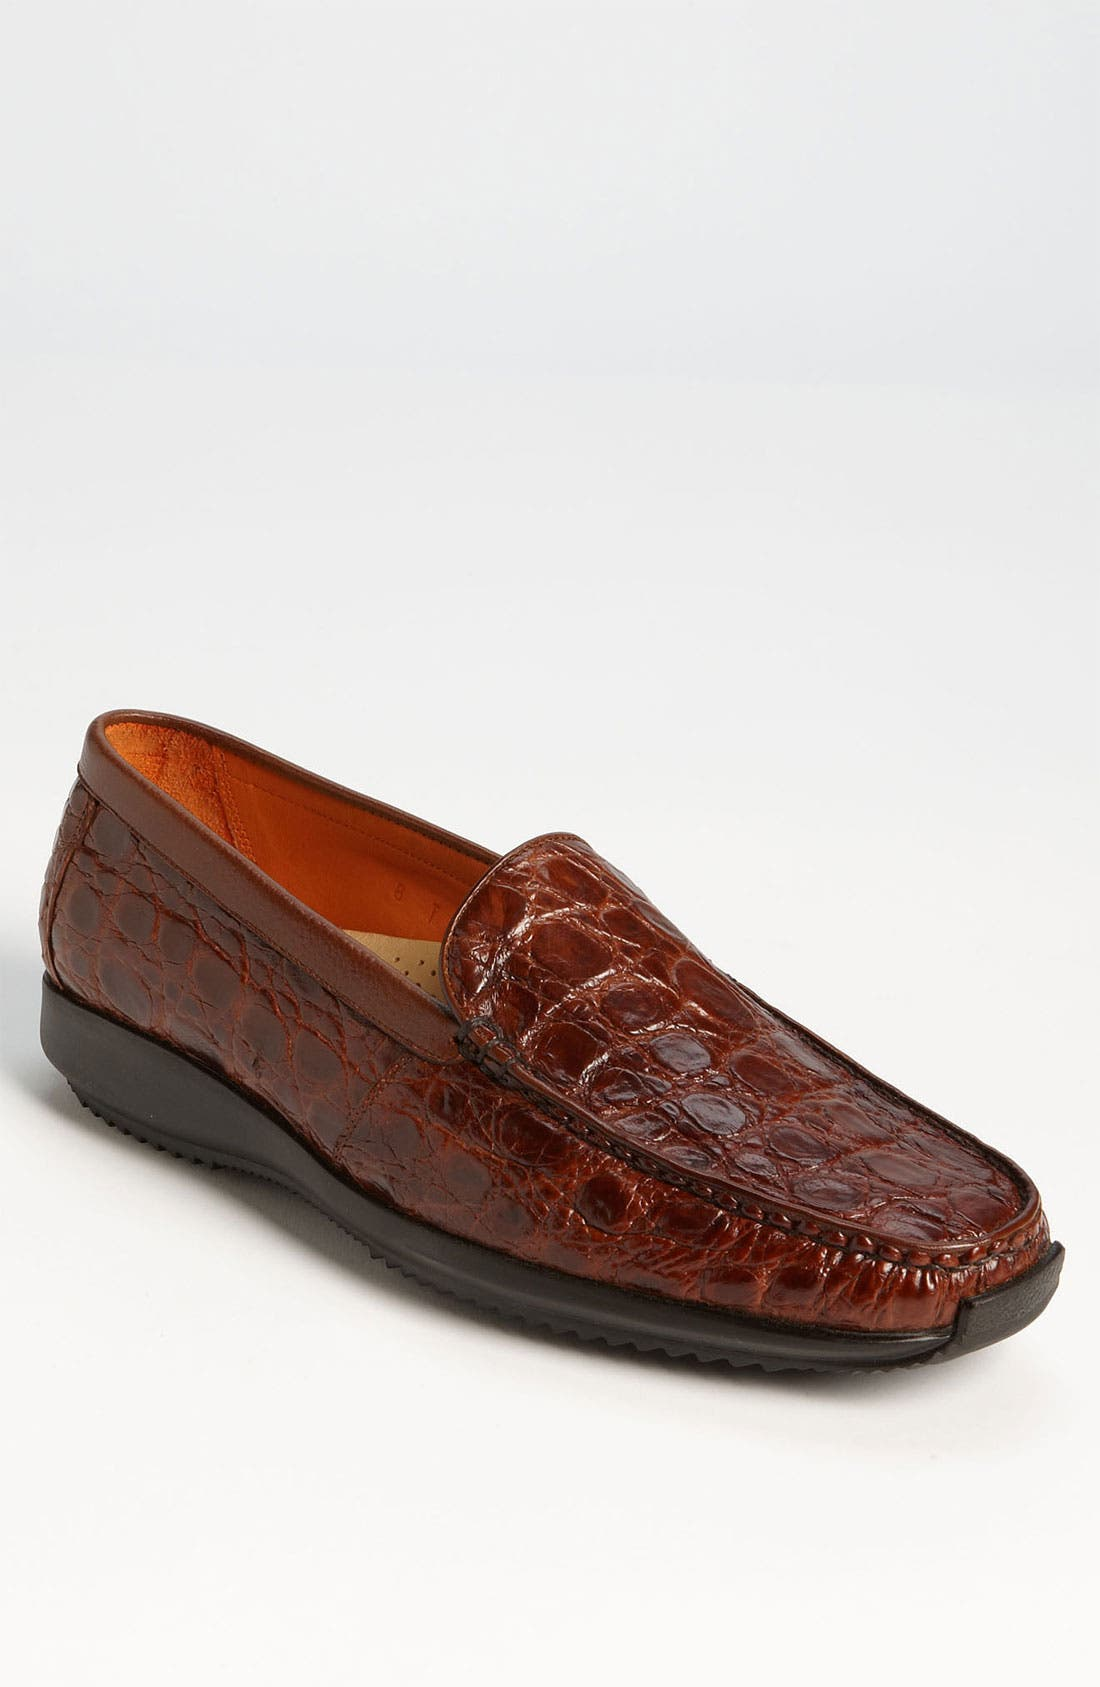 Main Image - Martin Dingman 'Arlo' Crocodile Loafer (Men)